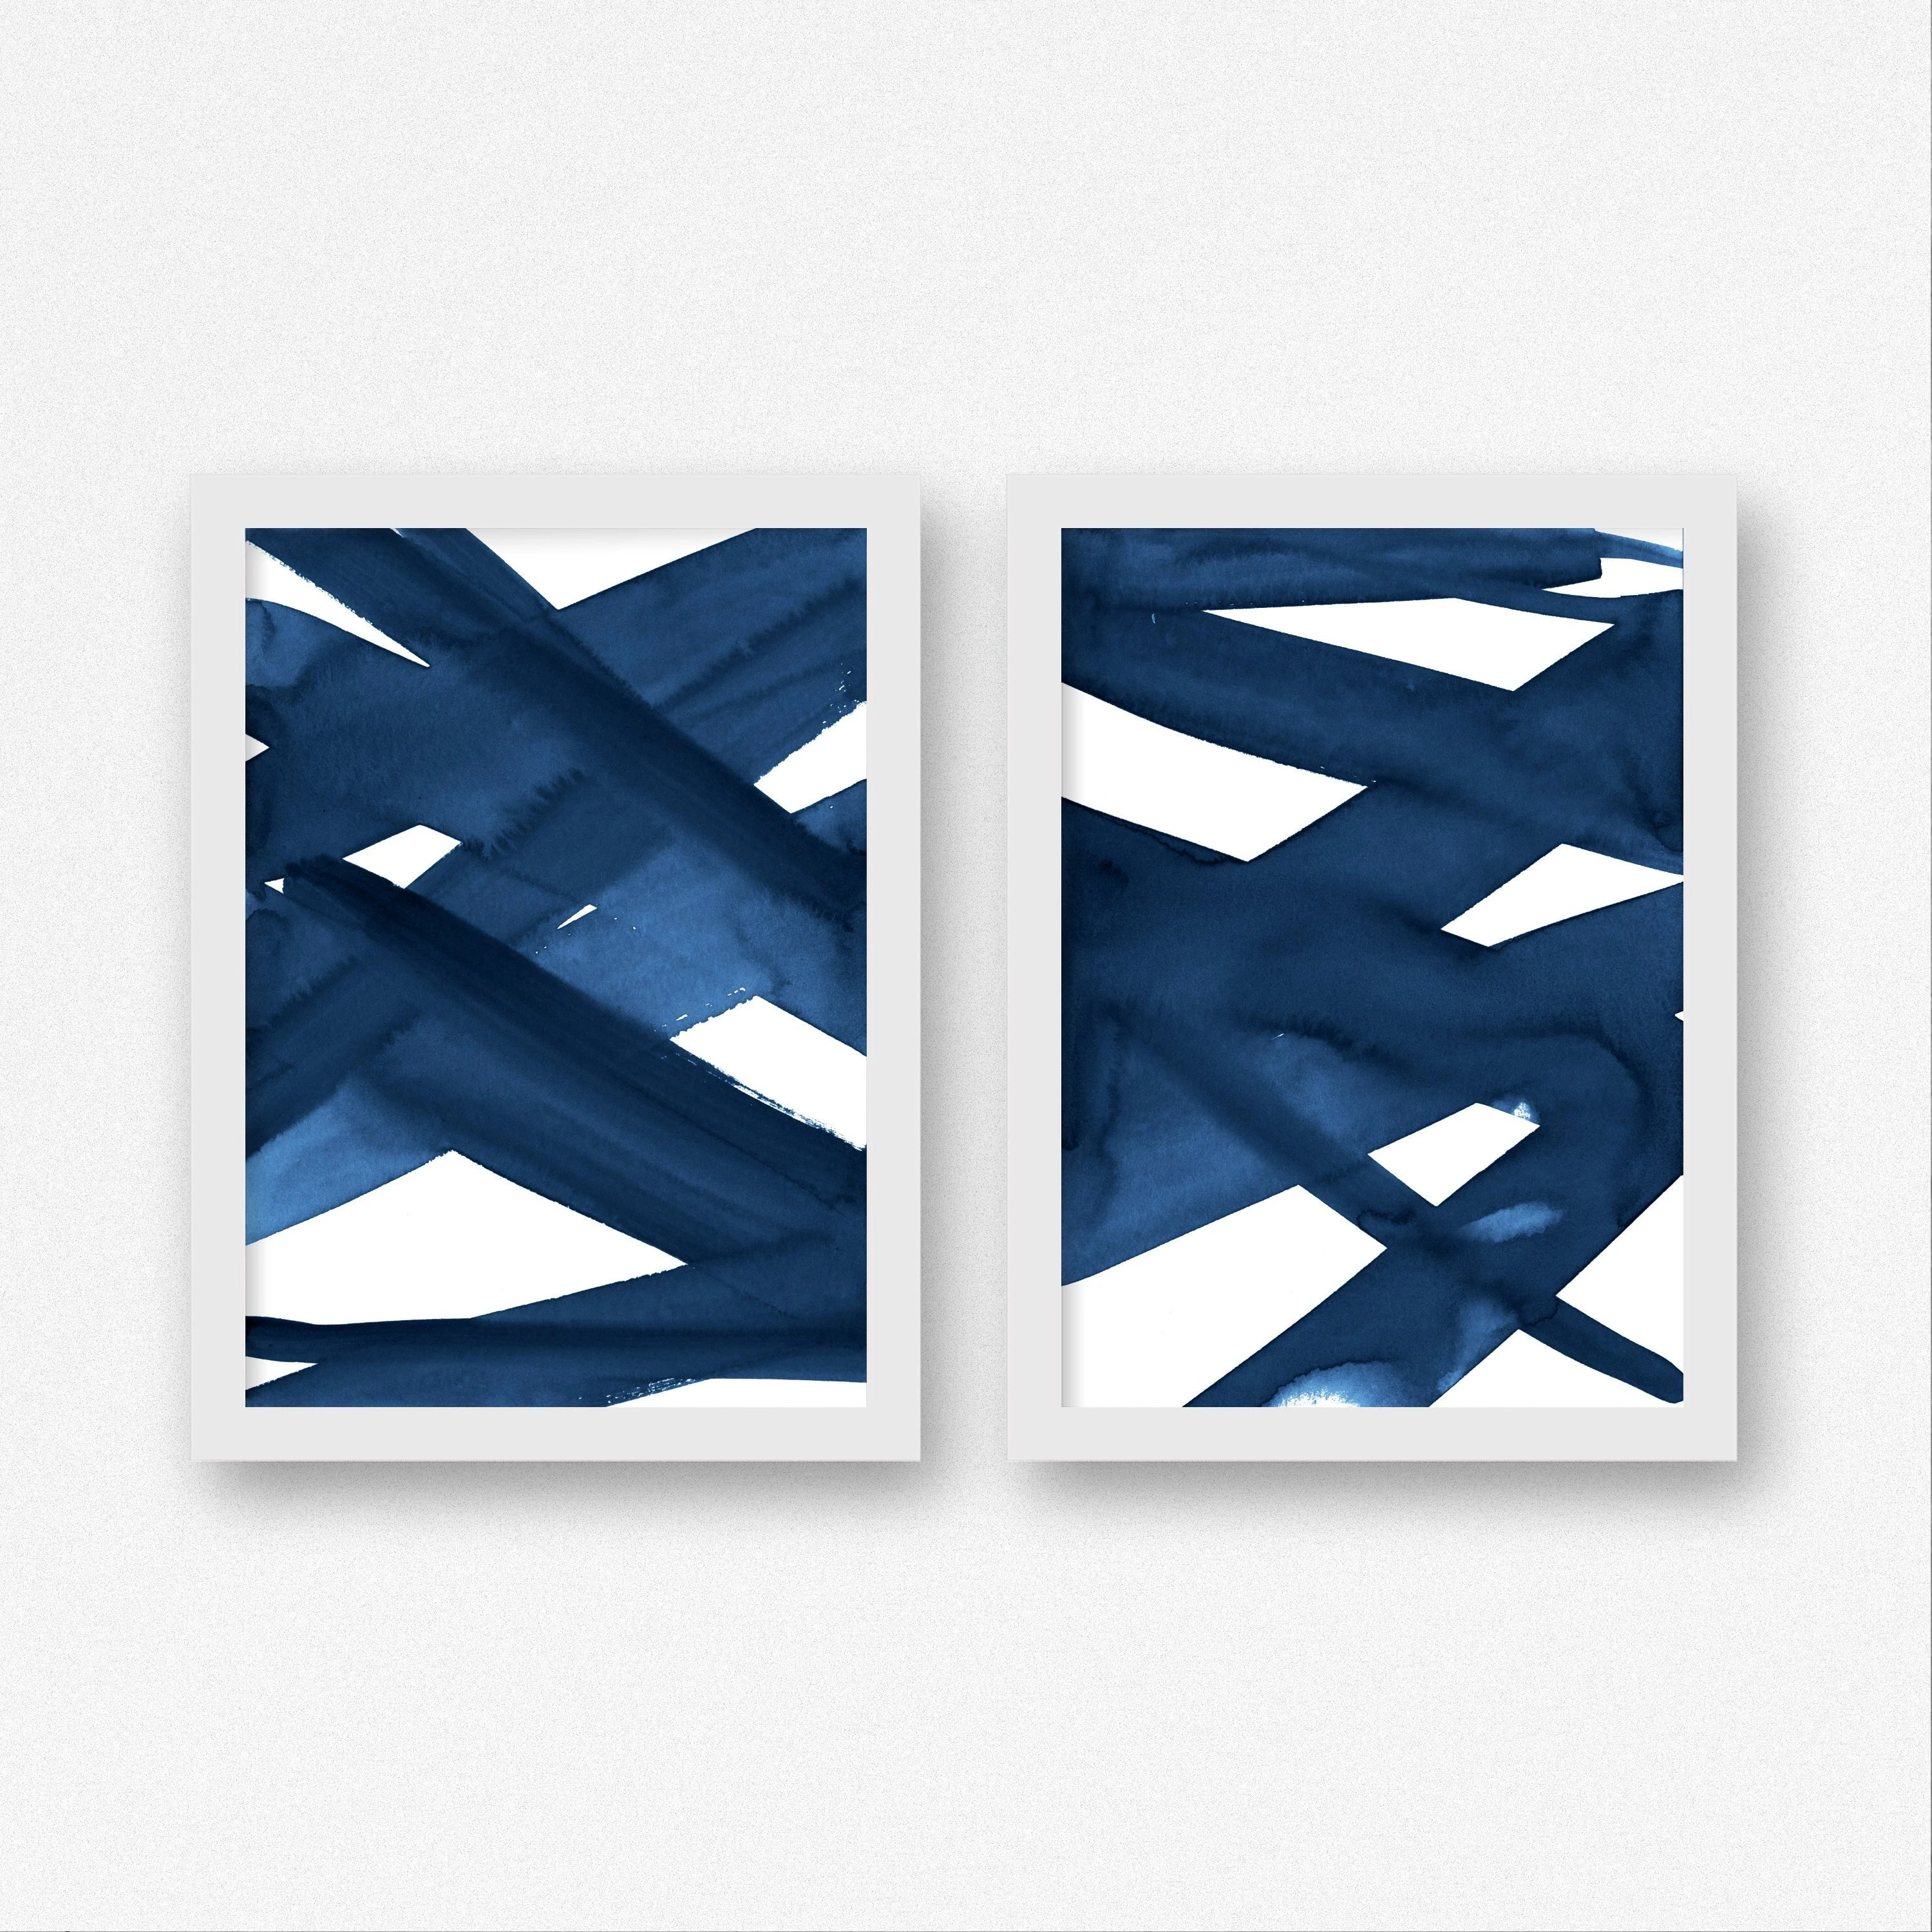 modern living room wall art paint ideas for with brown couches etsy navy blue abstract paintings 2 piece set home decor oversized extra large minimalist